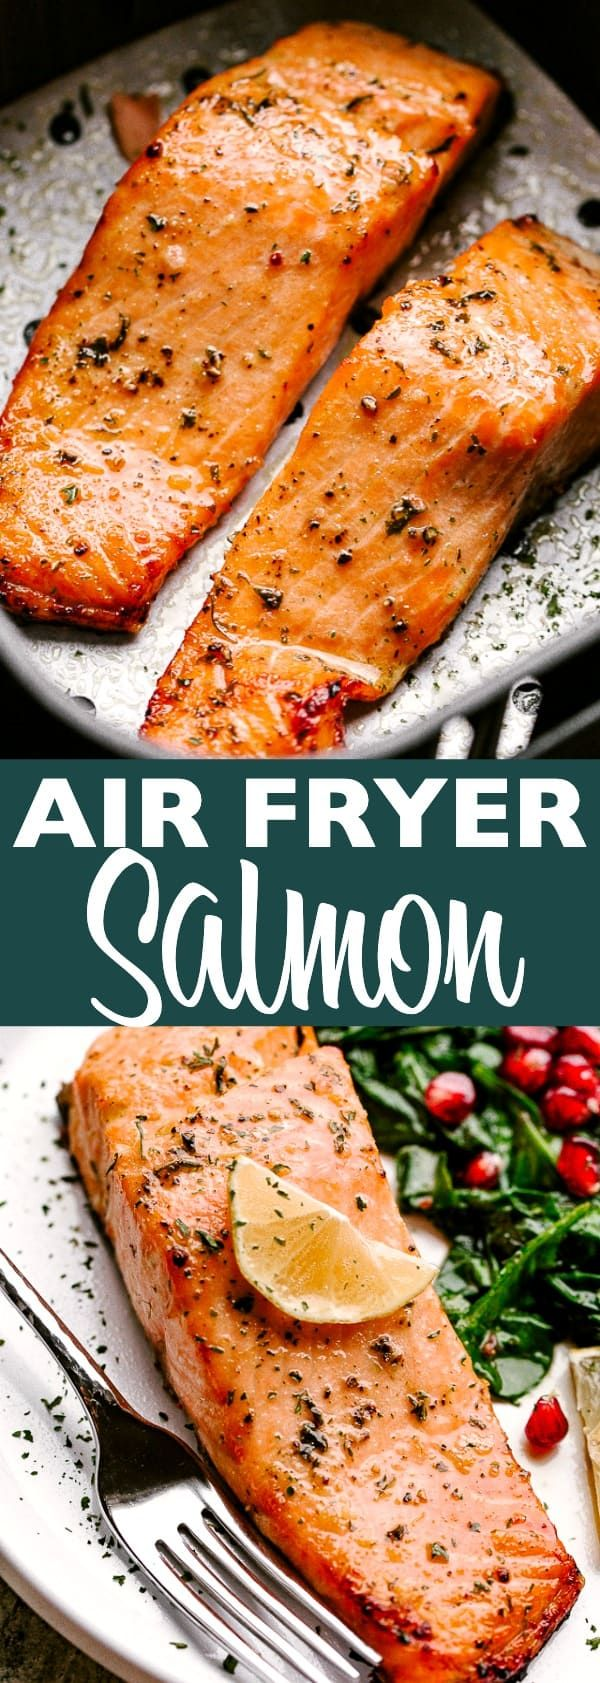 Air Fryer Salmon - Juicy, flaky, and deliciously flavored Salmon fillets cooked in the Air Fryer! This easy Keto-friendly seafood recipe is the perfect choice anytime you want a fabulous, low carb dinner. #salmon #airfryer #keto #lowcarb